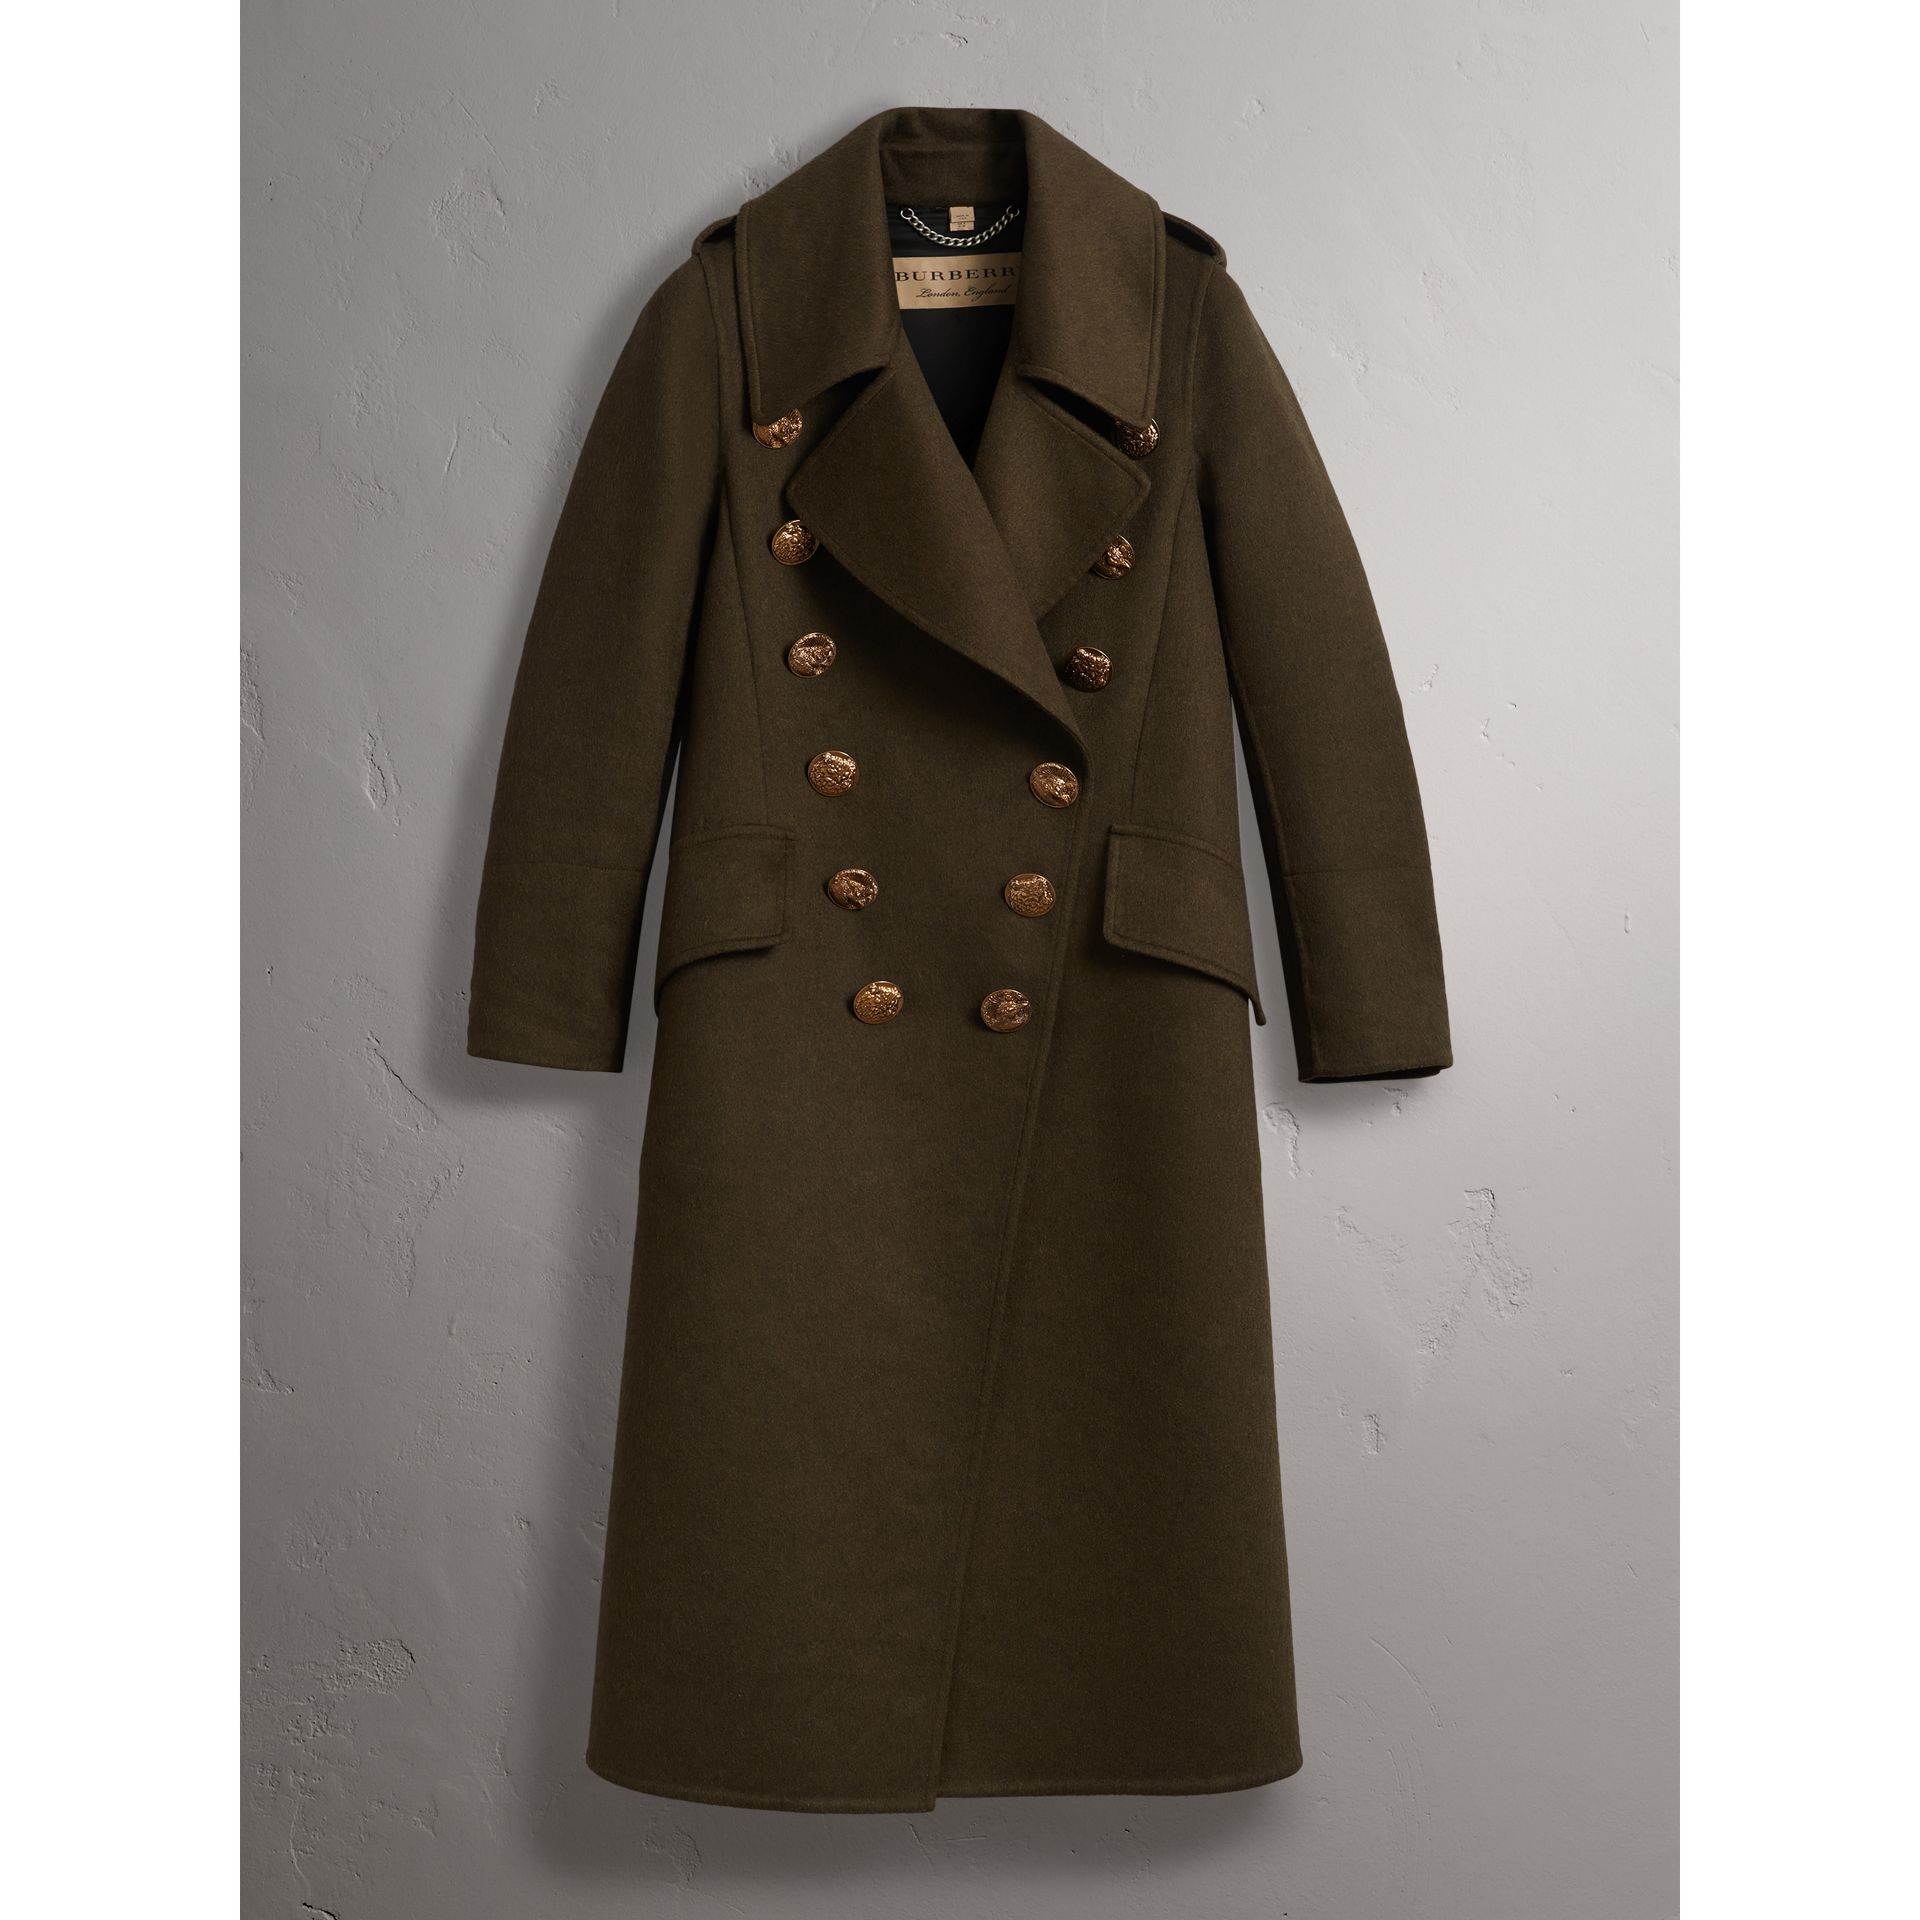 Bird Button Cashmere Wool Military Coat in Dark  Green - Women | Burberry - gallery image 3